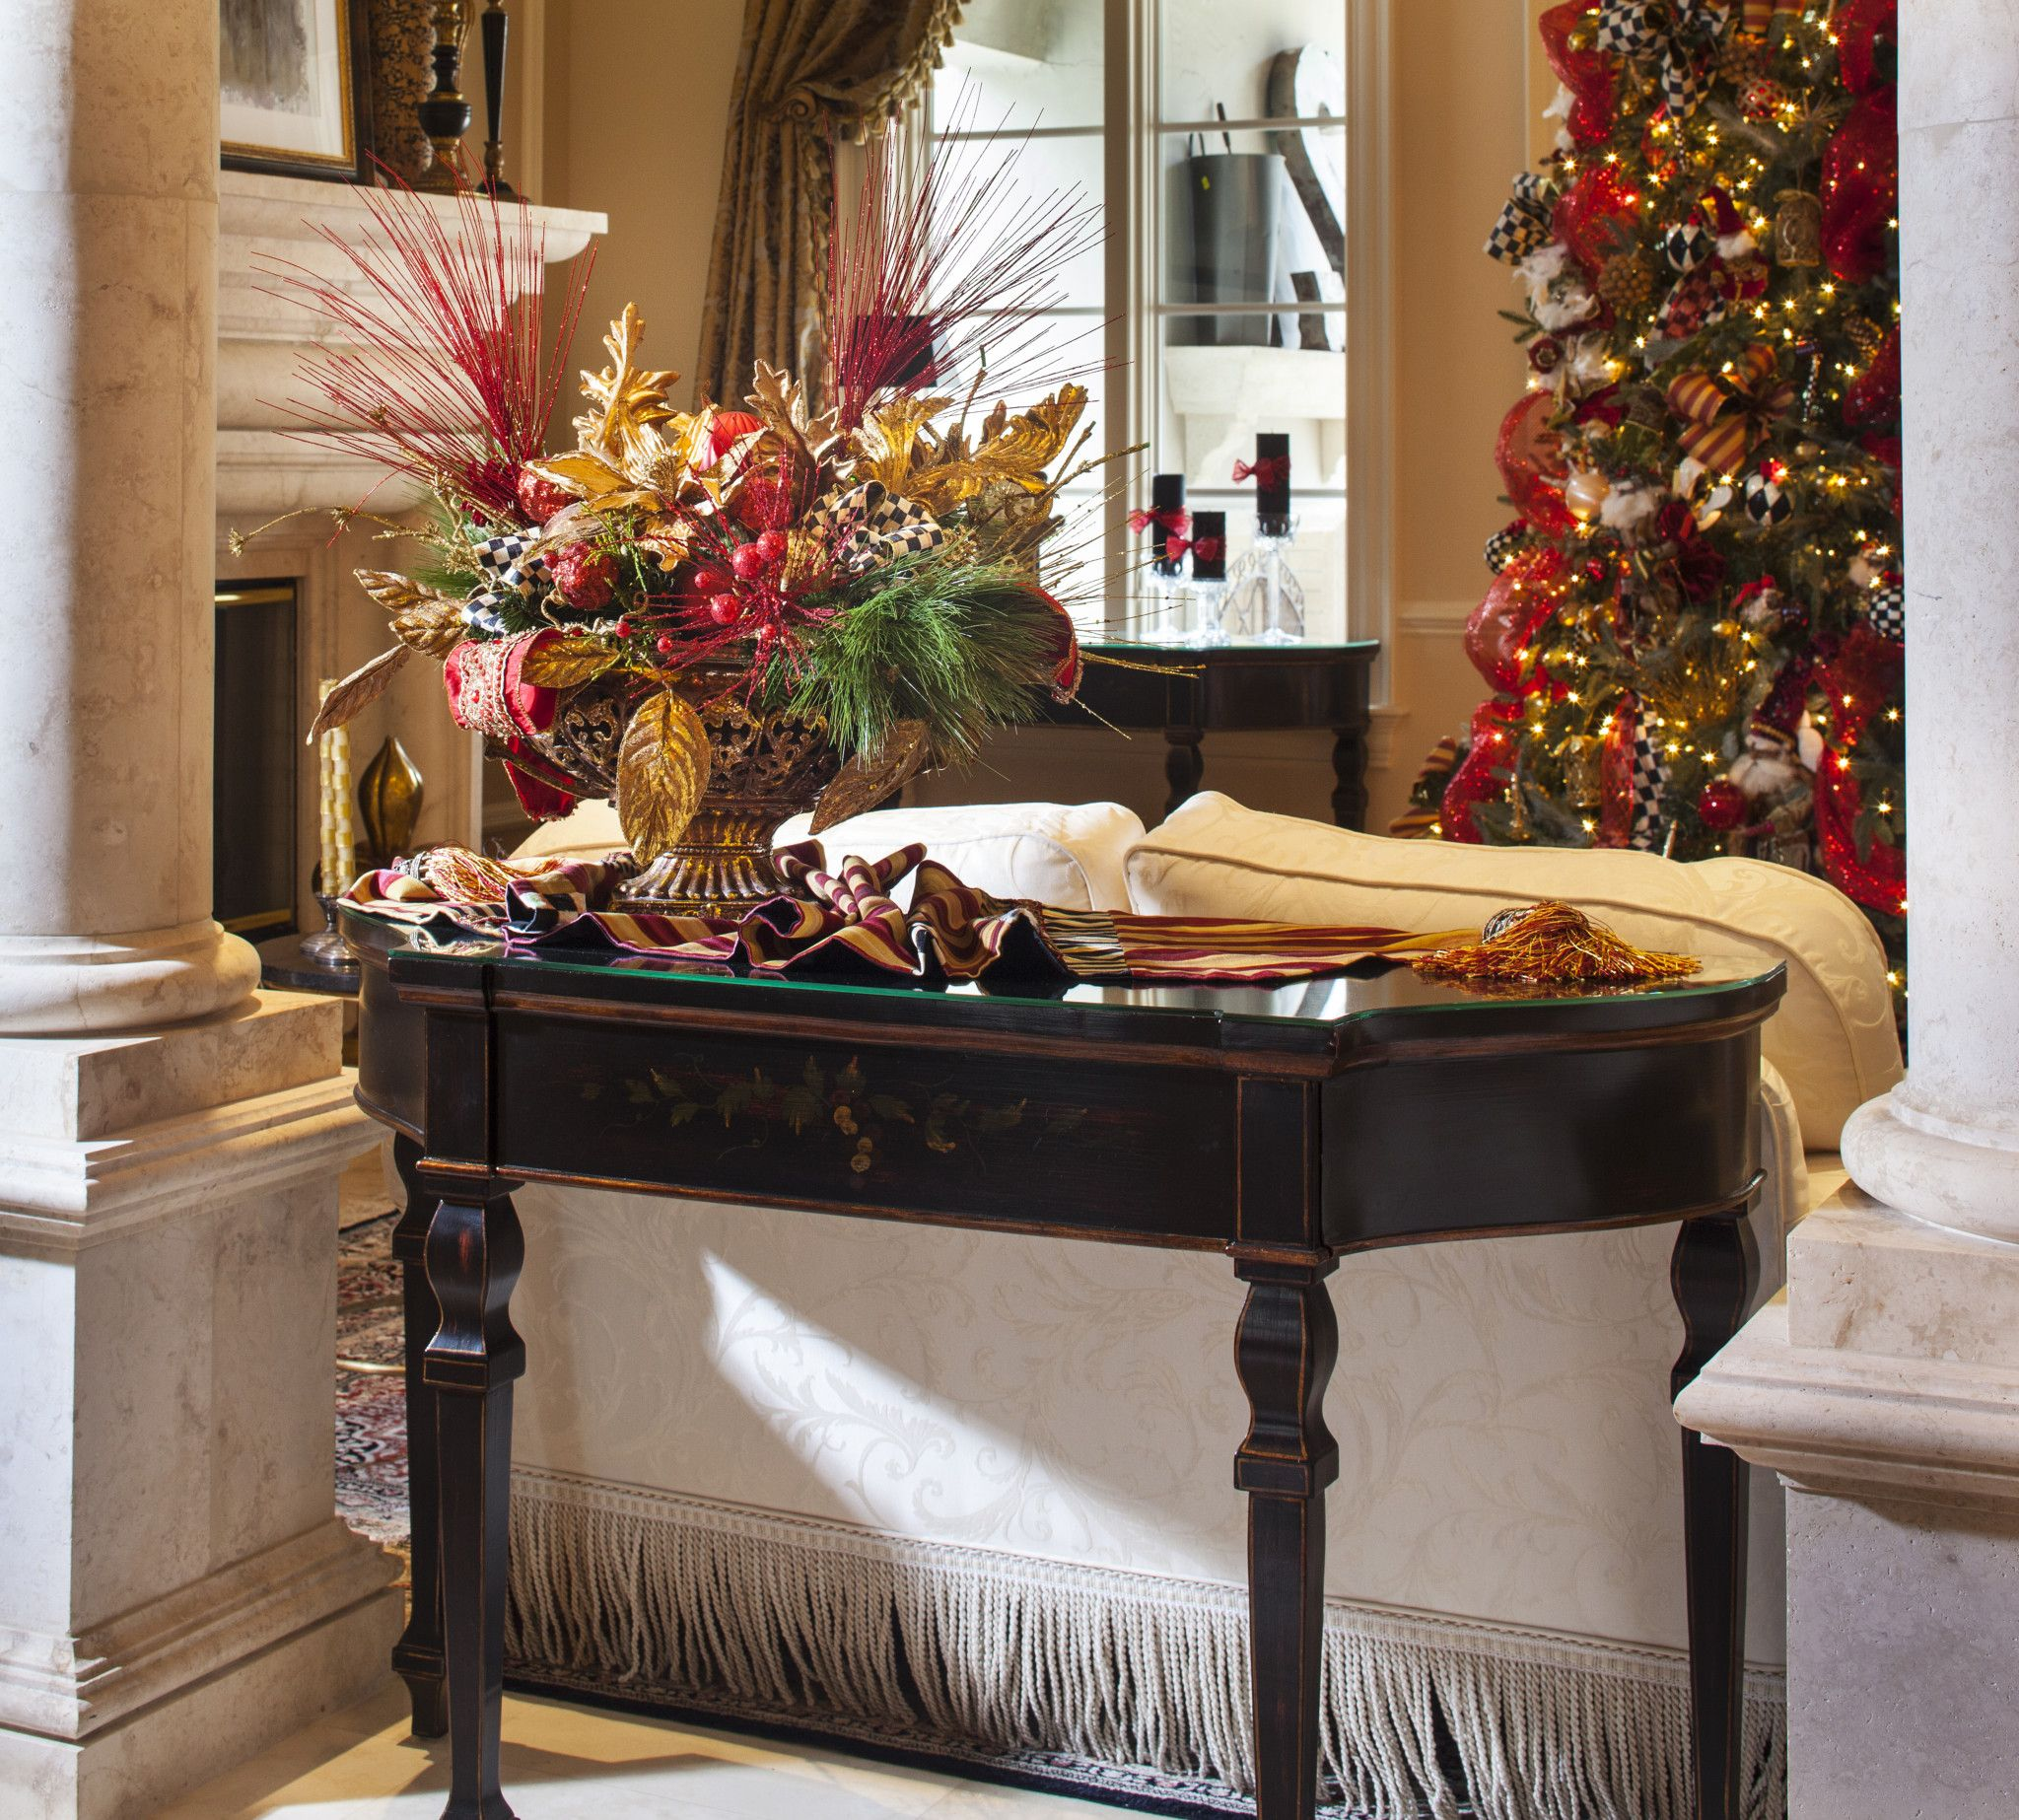 Holiday Interior Design Photo Gallery in Tampa, FL ...